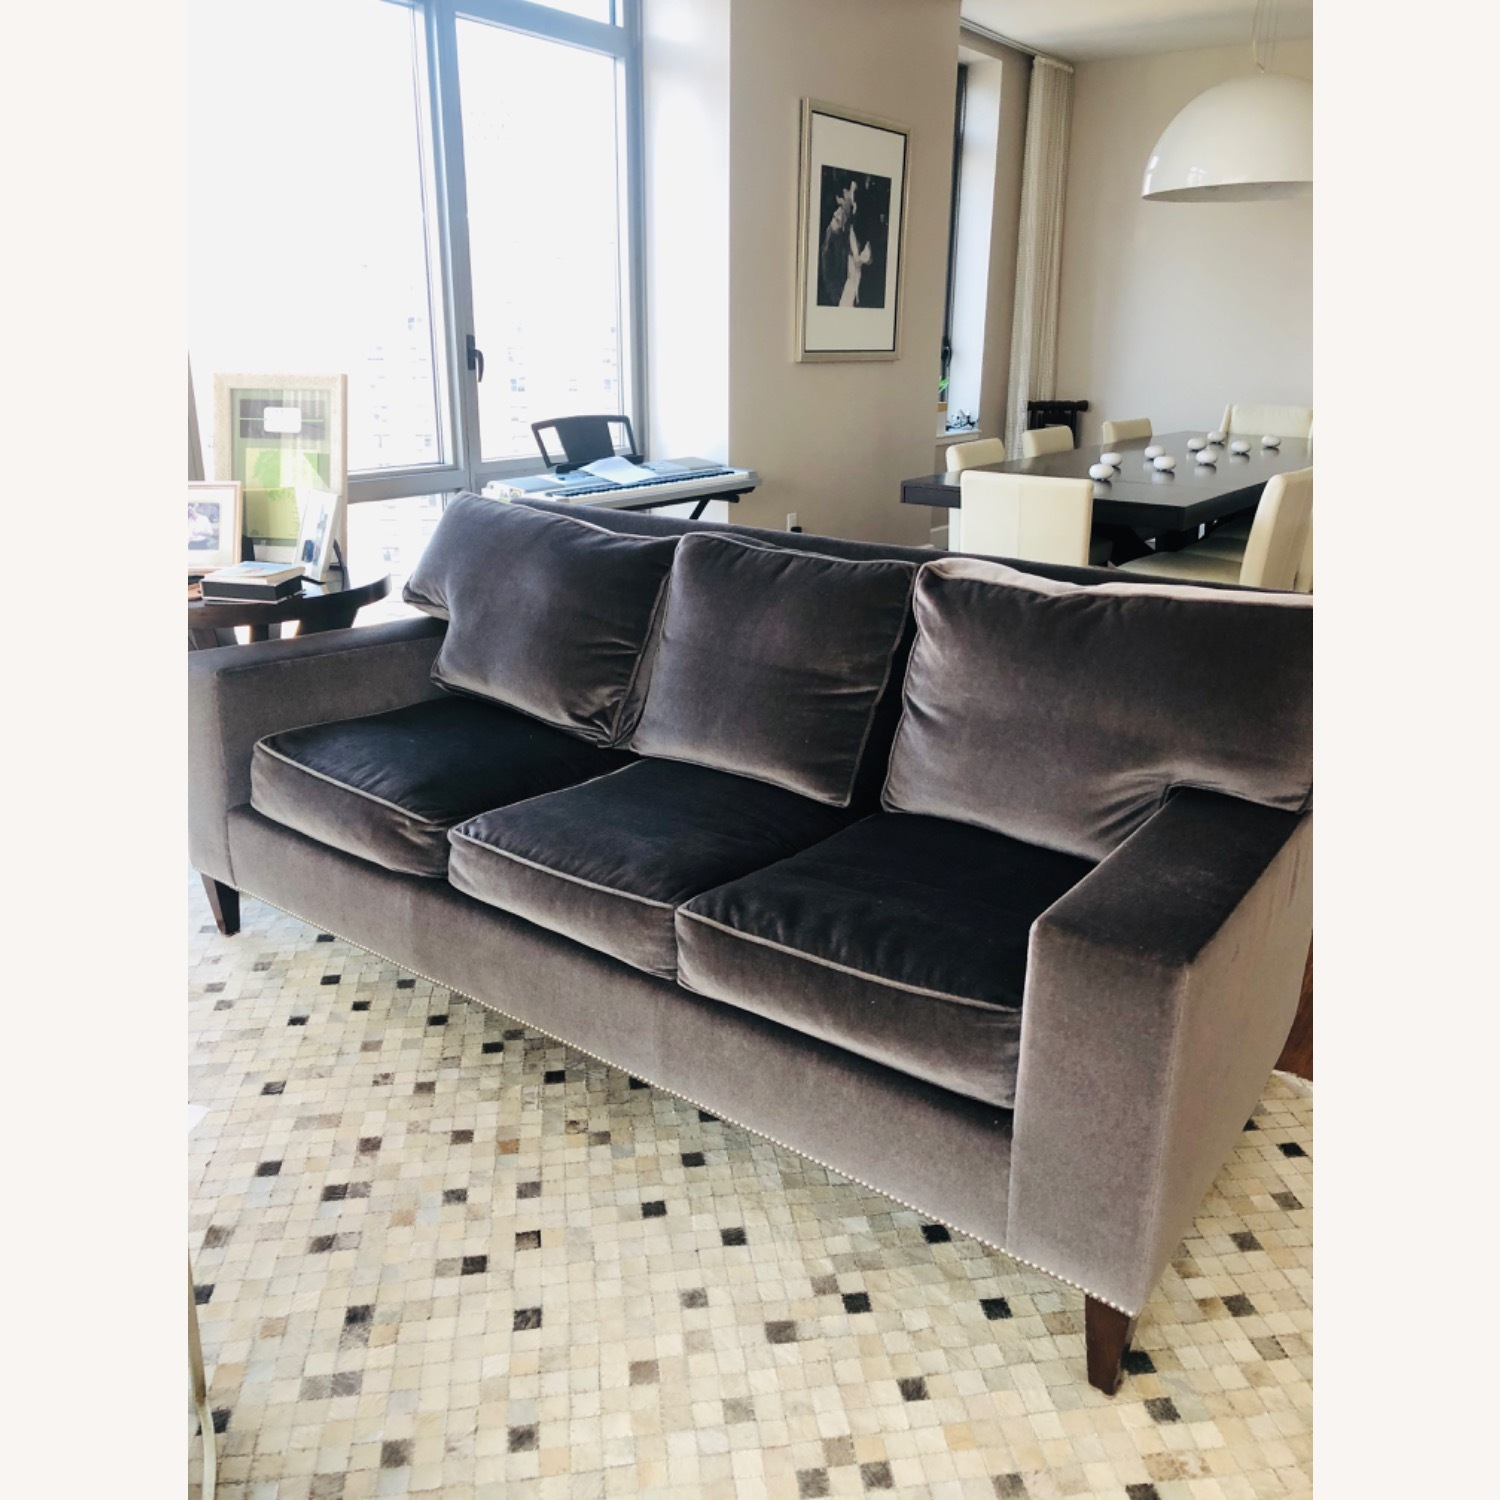 Chic Custom Couch creates by our Designer - image-1